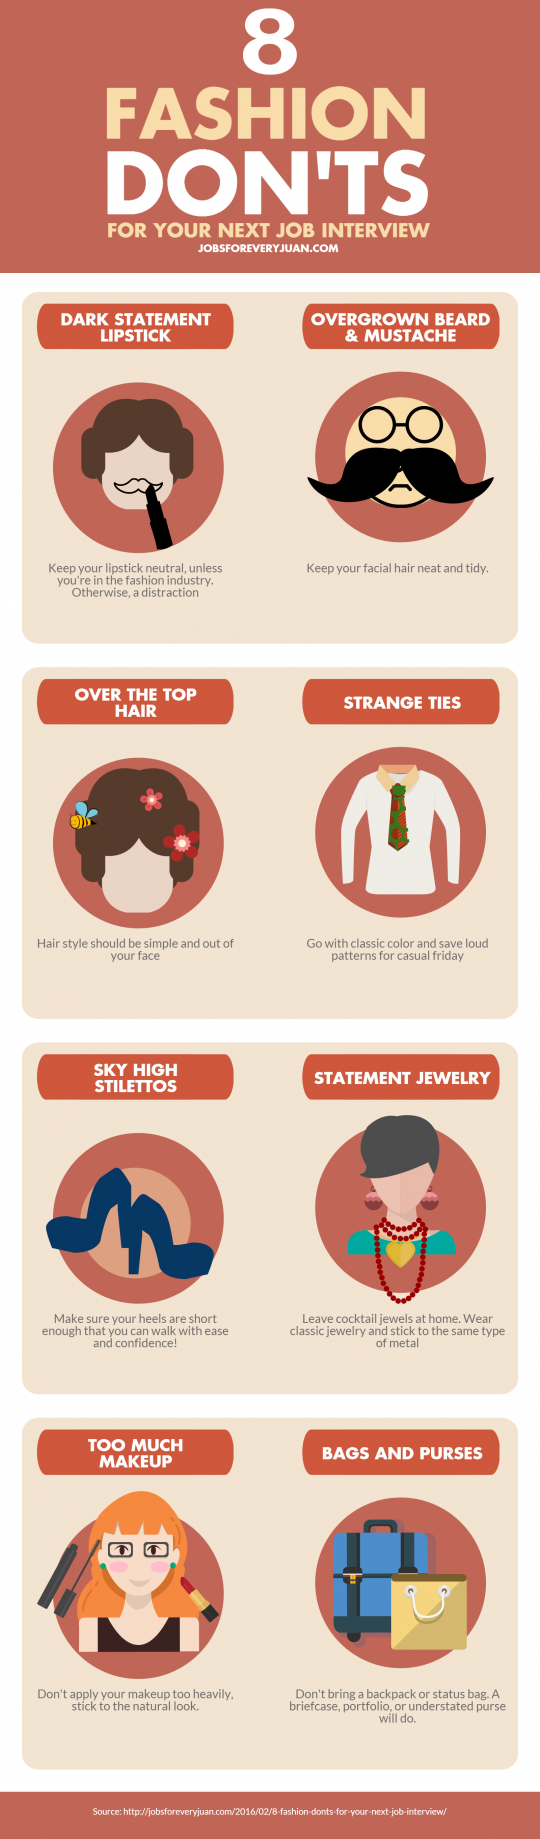 fashion don ts for your next job interview infographic 8 fashion don ts for your next job interview fashion don ts